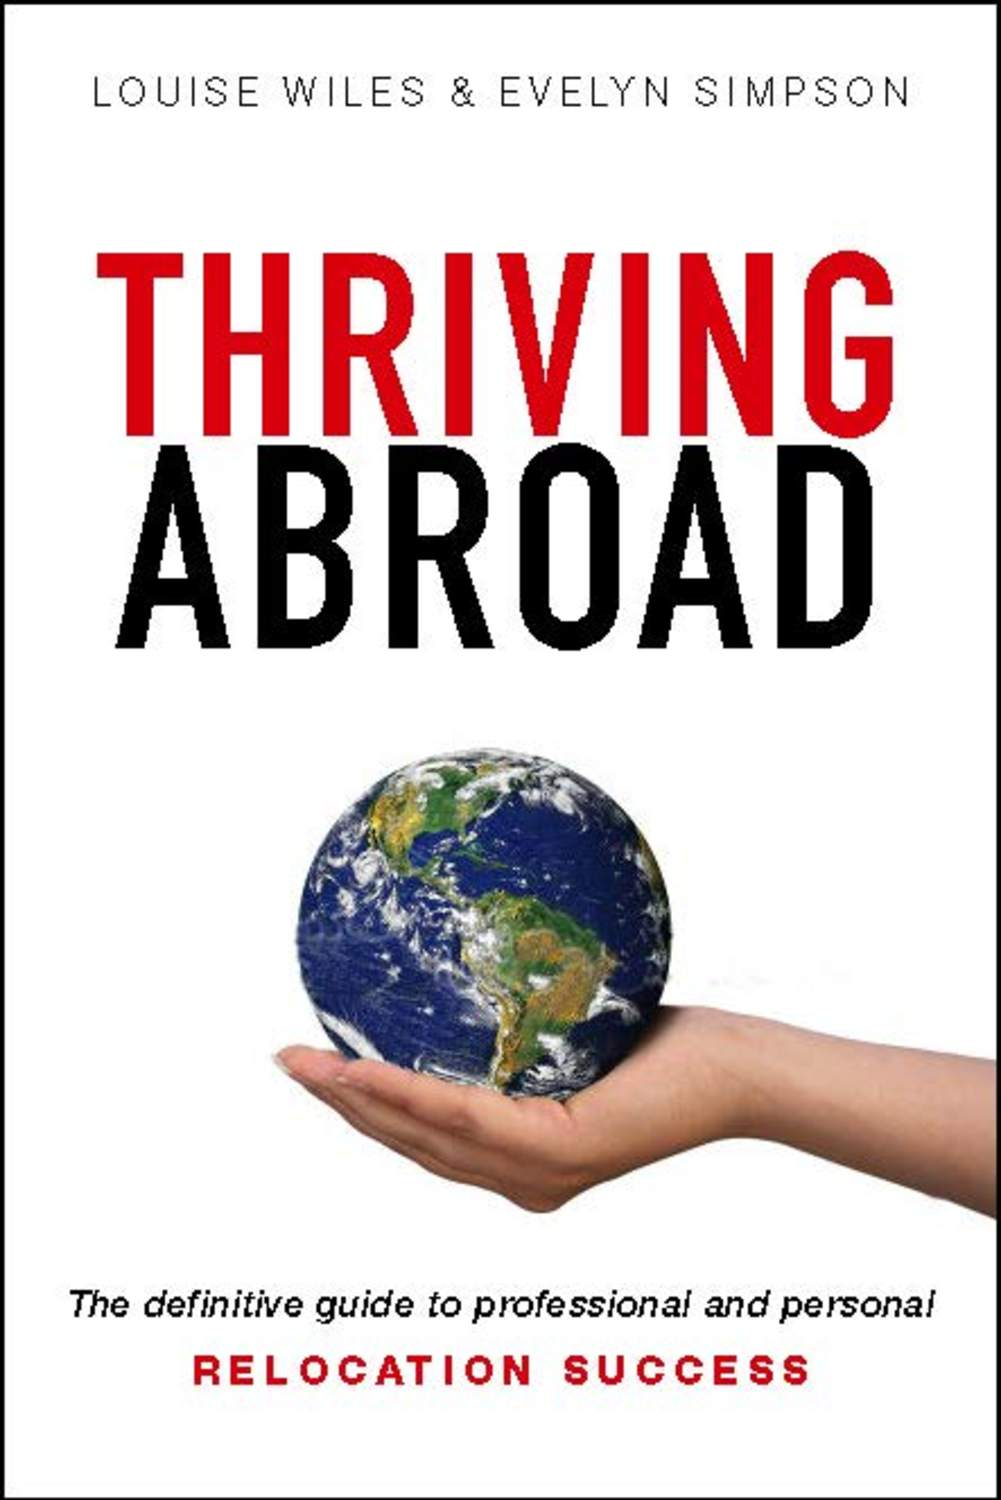 Book cover for Thriving Abroad:  The definitive guide to professional and personal relocation success a book by Evelyn  Simpson, Louise  Wiles